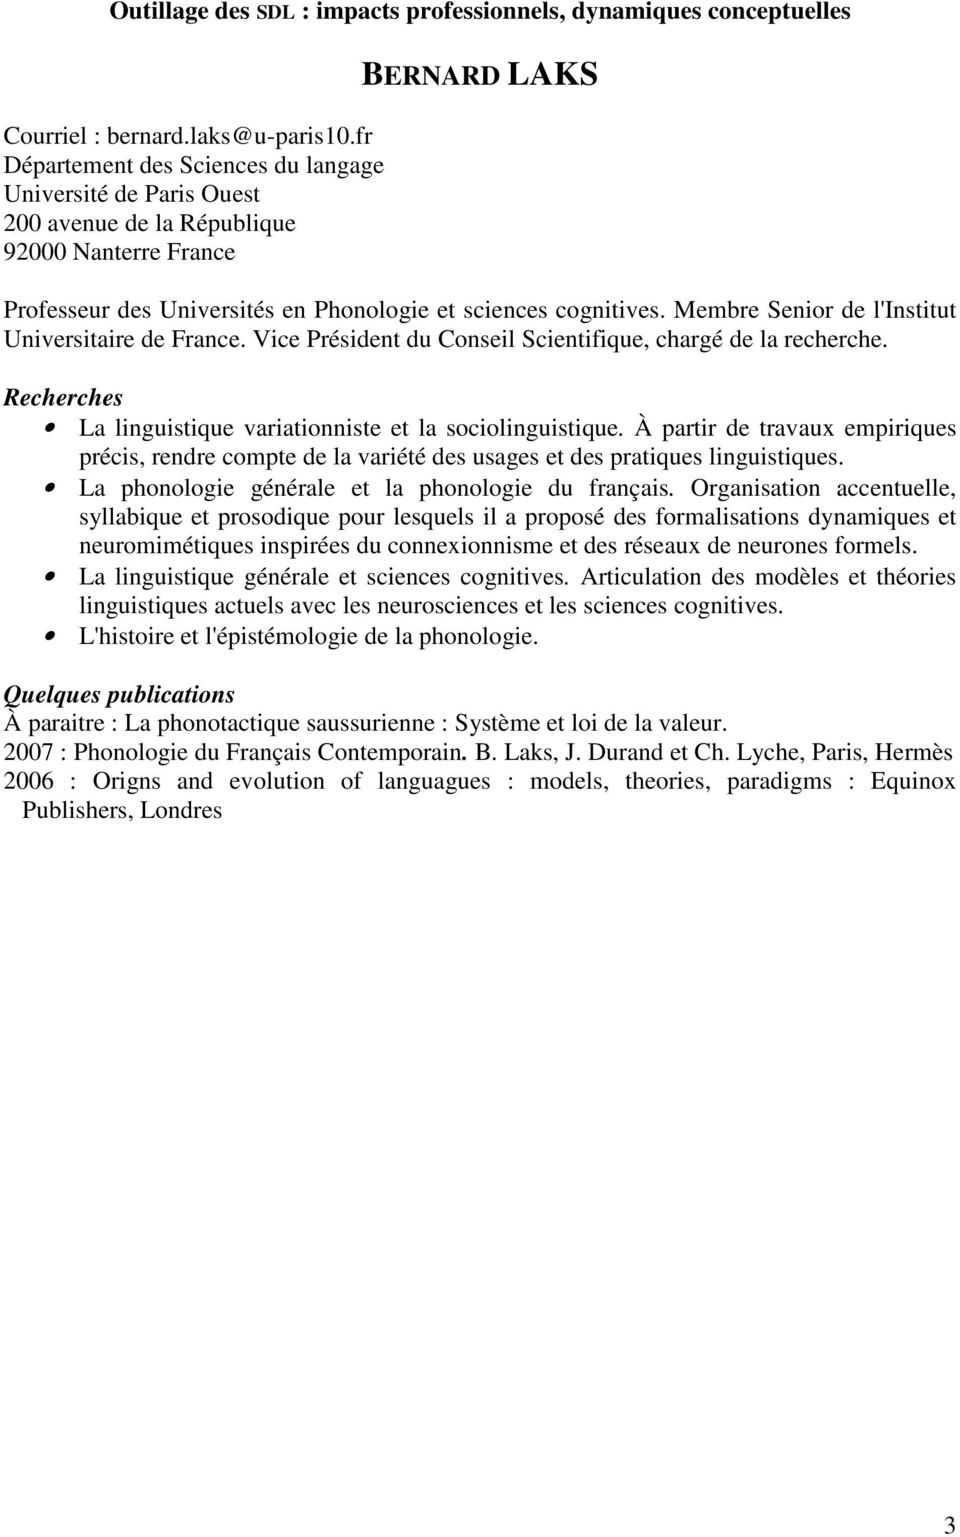 Membre Senior de l'institut Universitaire de France. Vice Président du Conseil Scientifique, chargé de la recherche. La linguistique variationniste et la sociolinguistique.